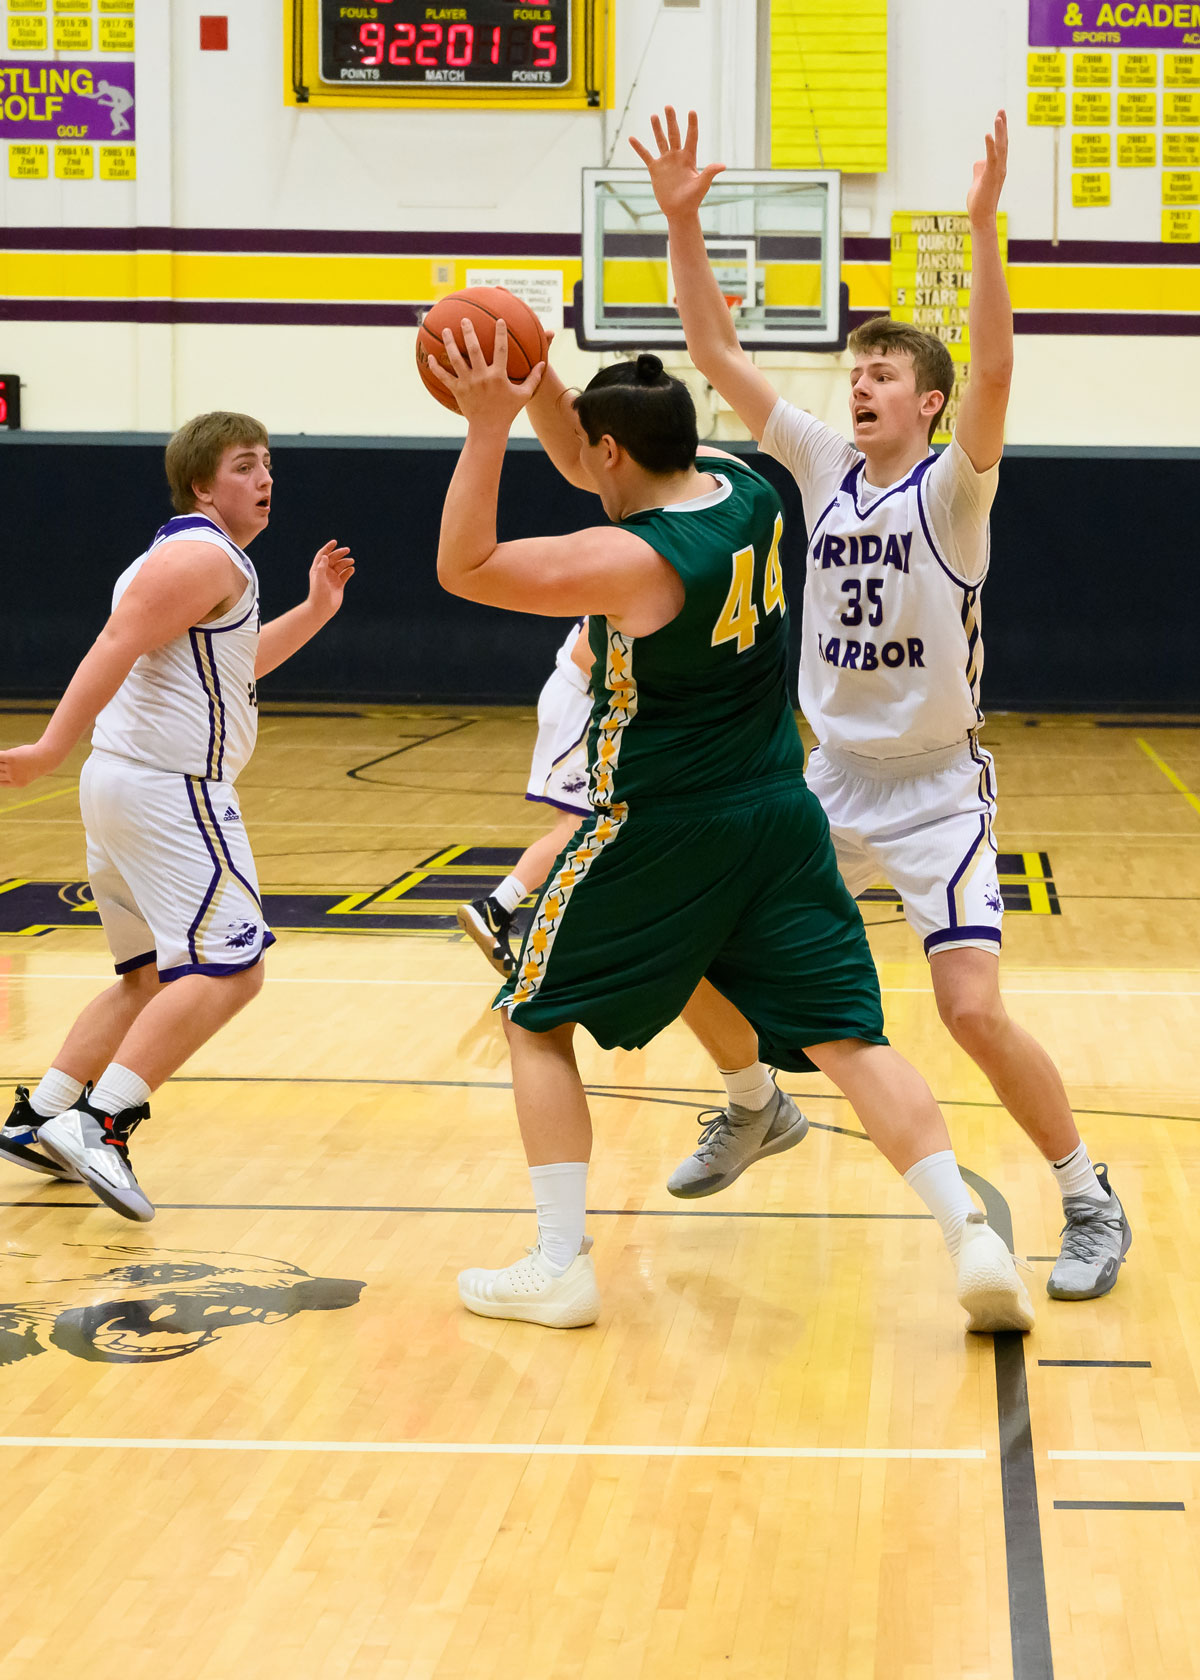 boys-basketball-1308.jpg